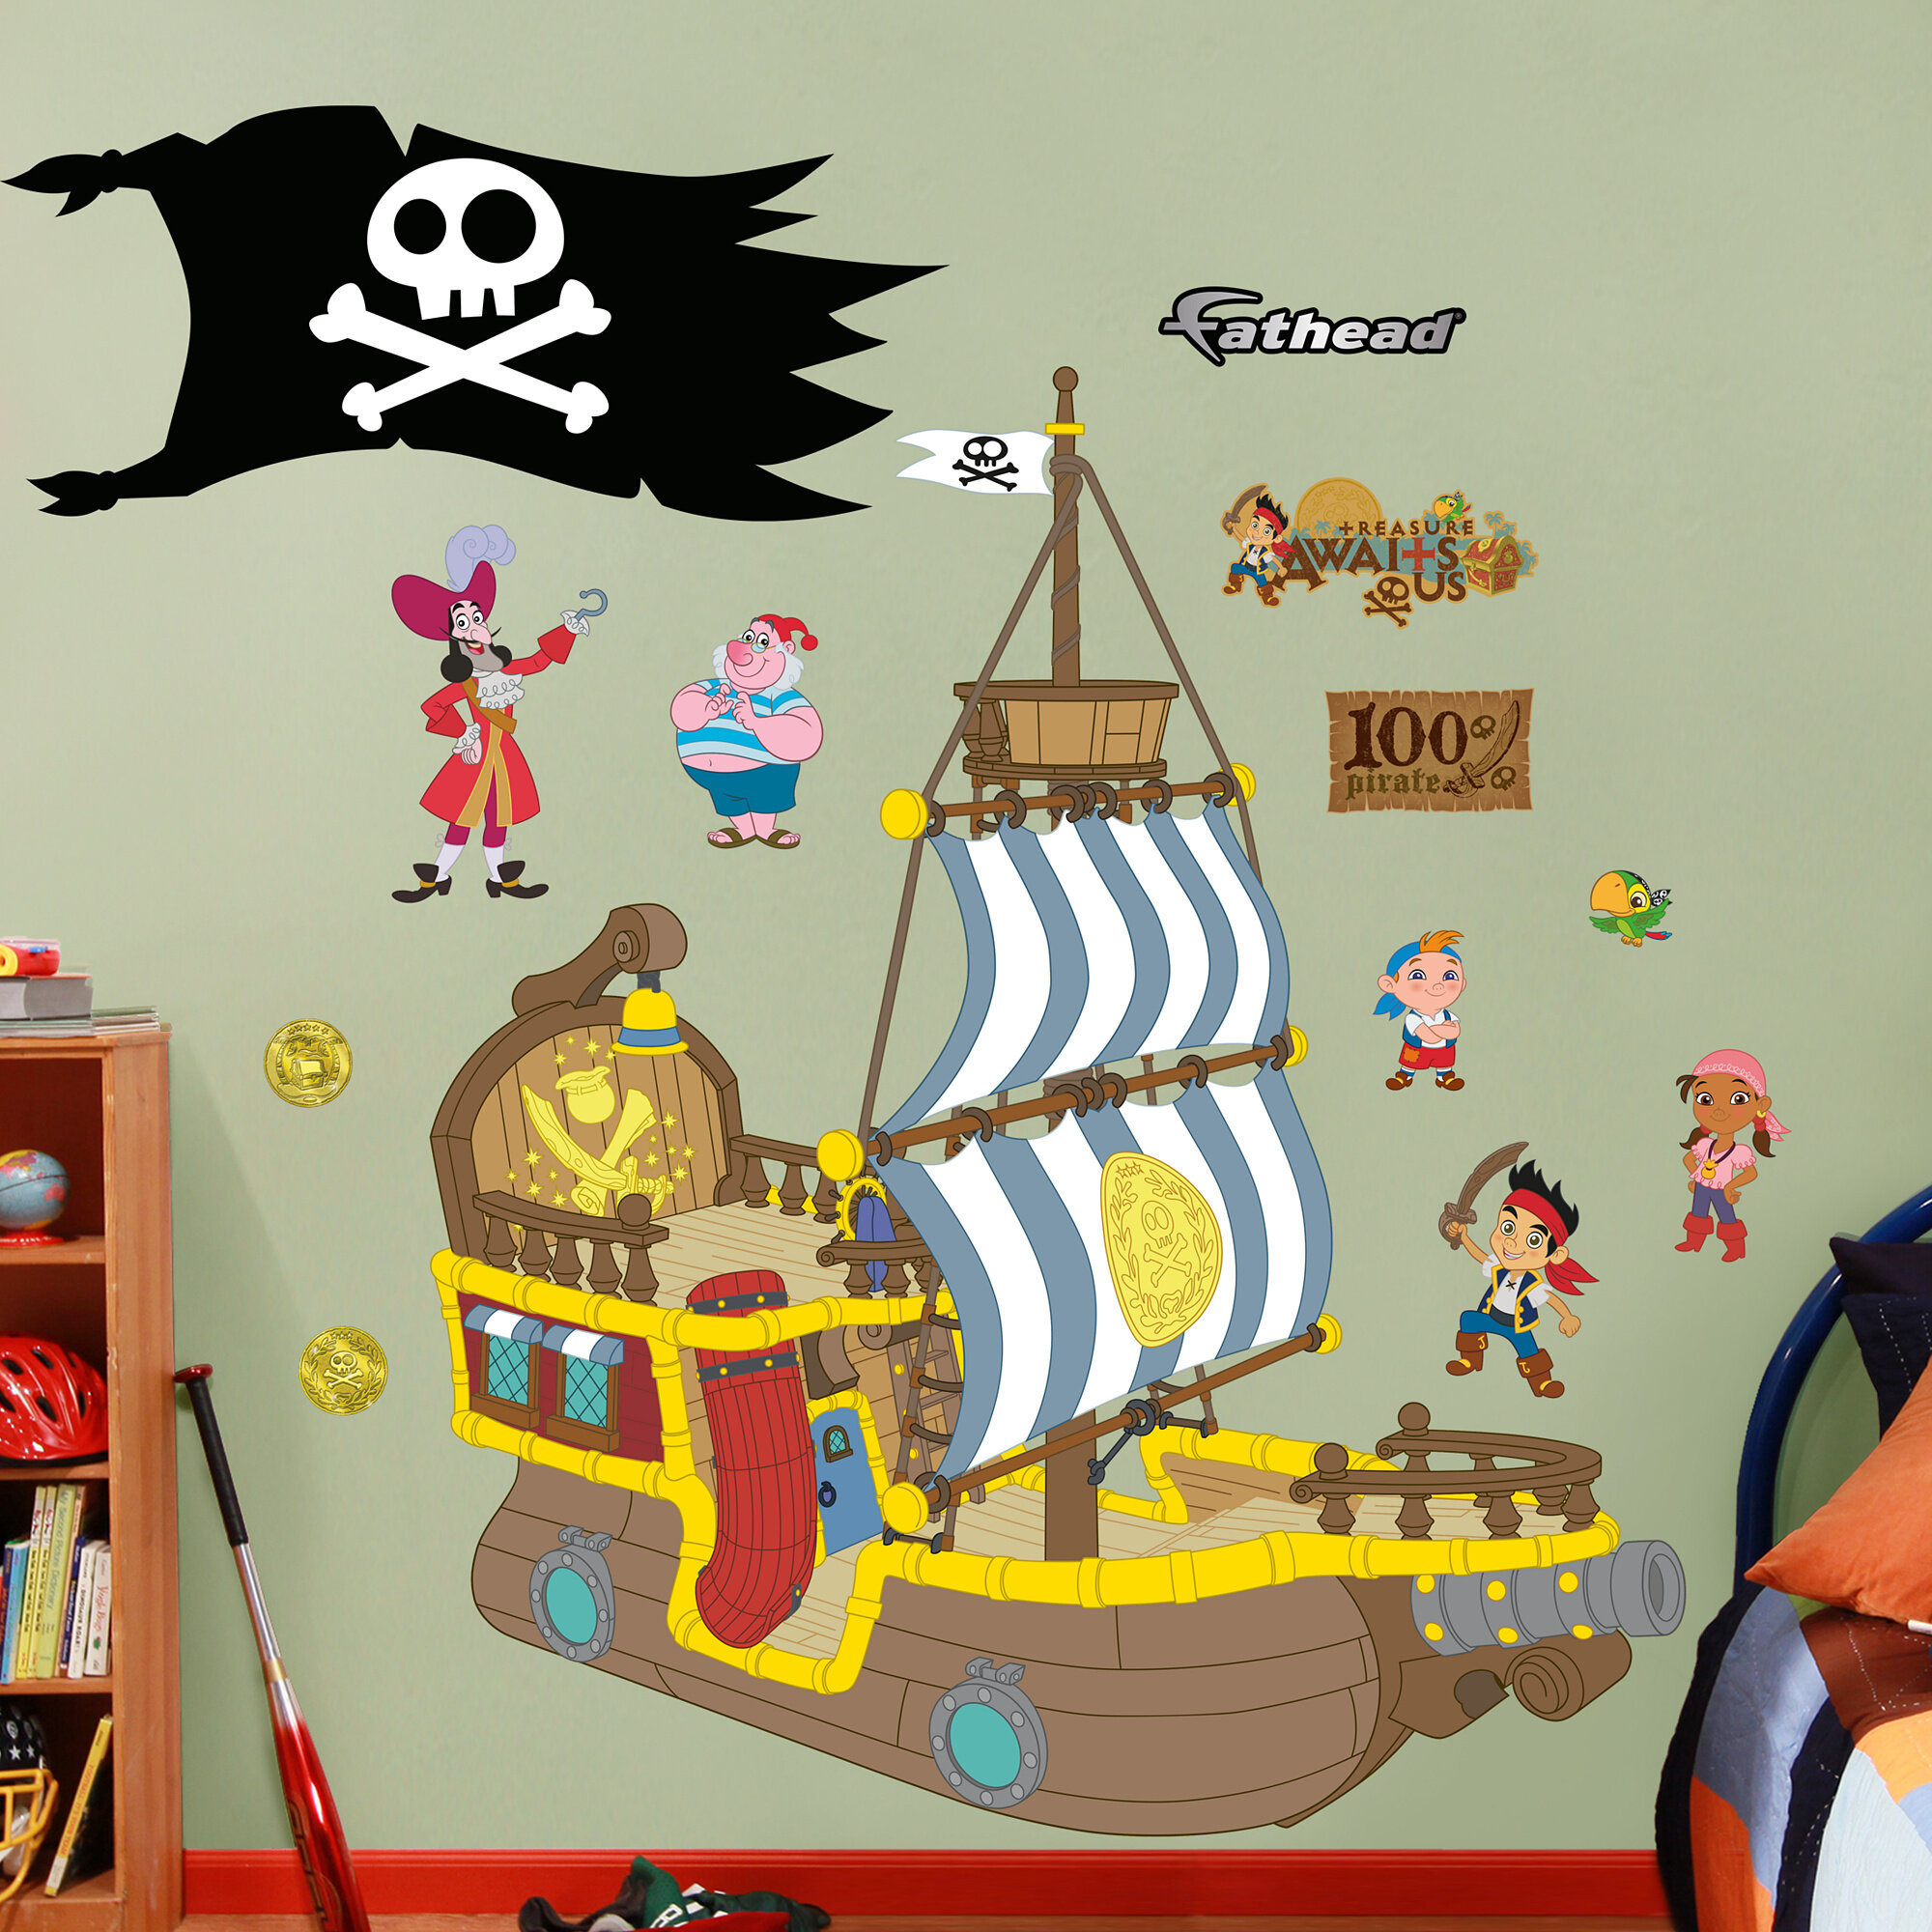 Fathead Disney Jake And The Neverland Pirates Wall Decal Wayfair